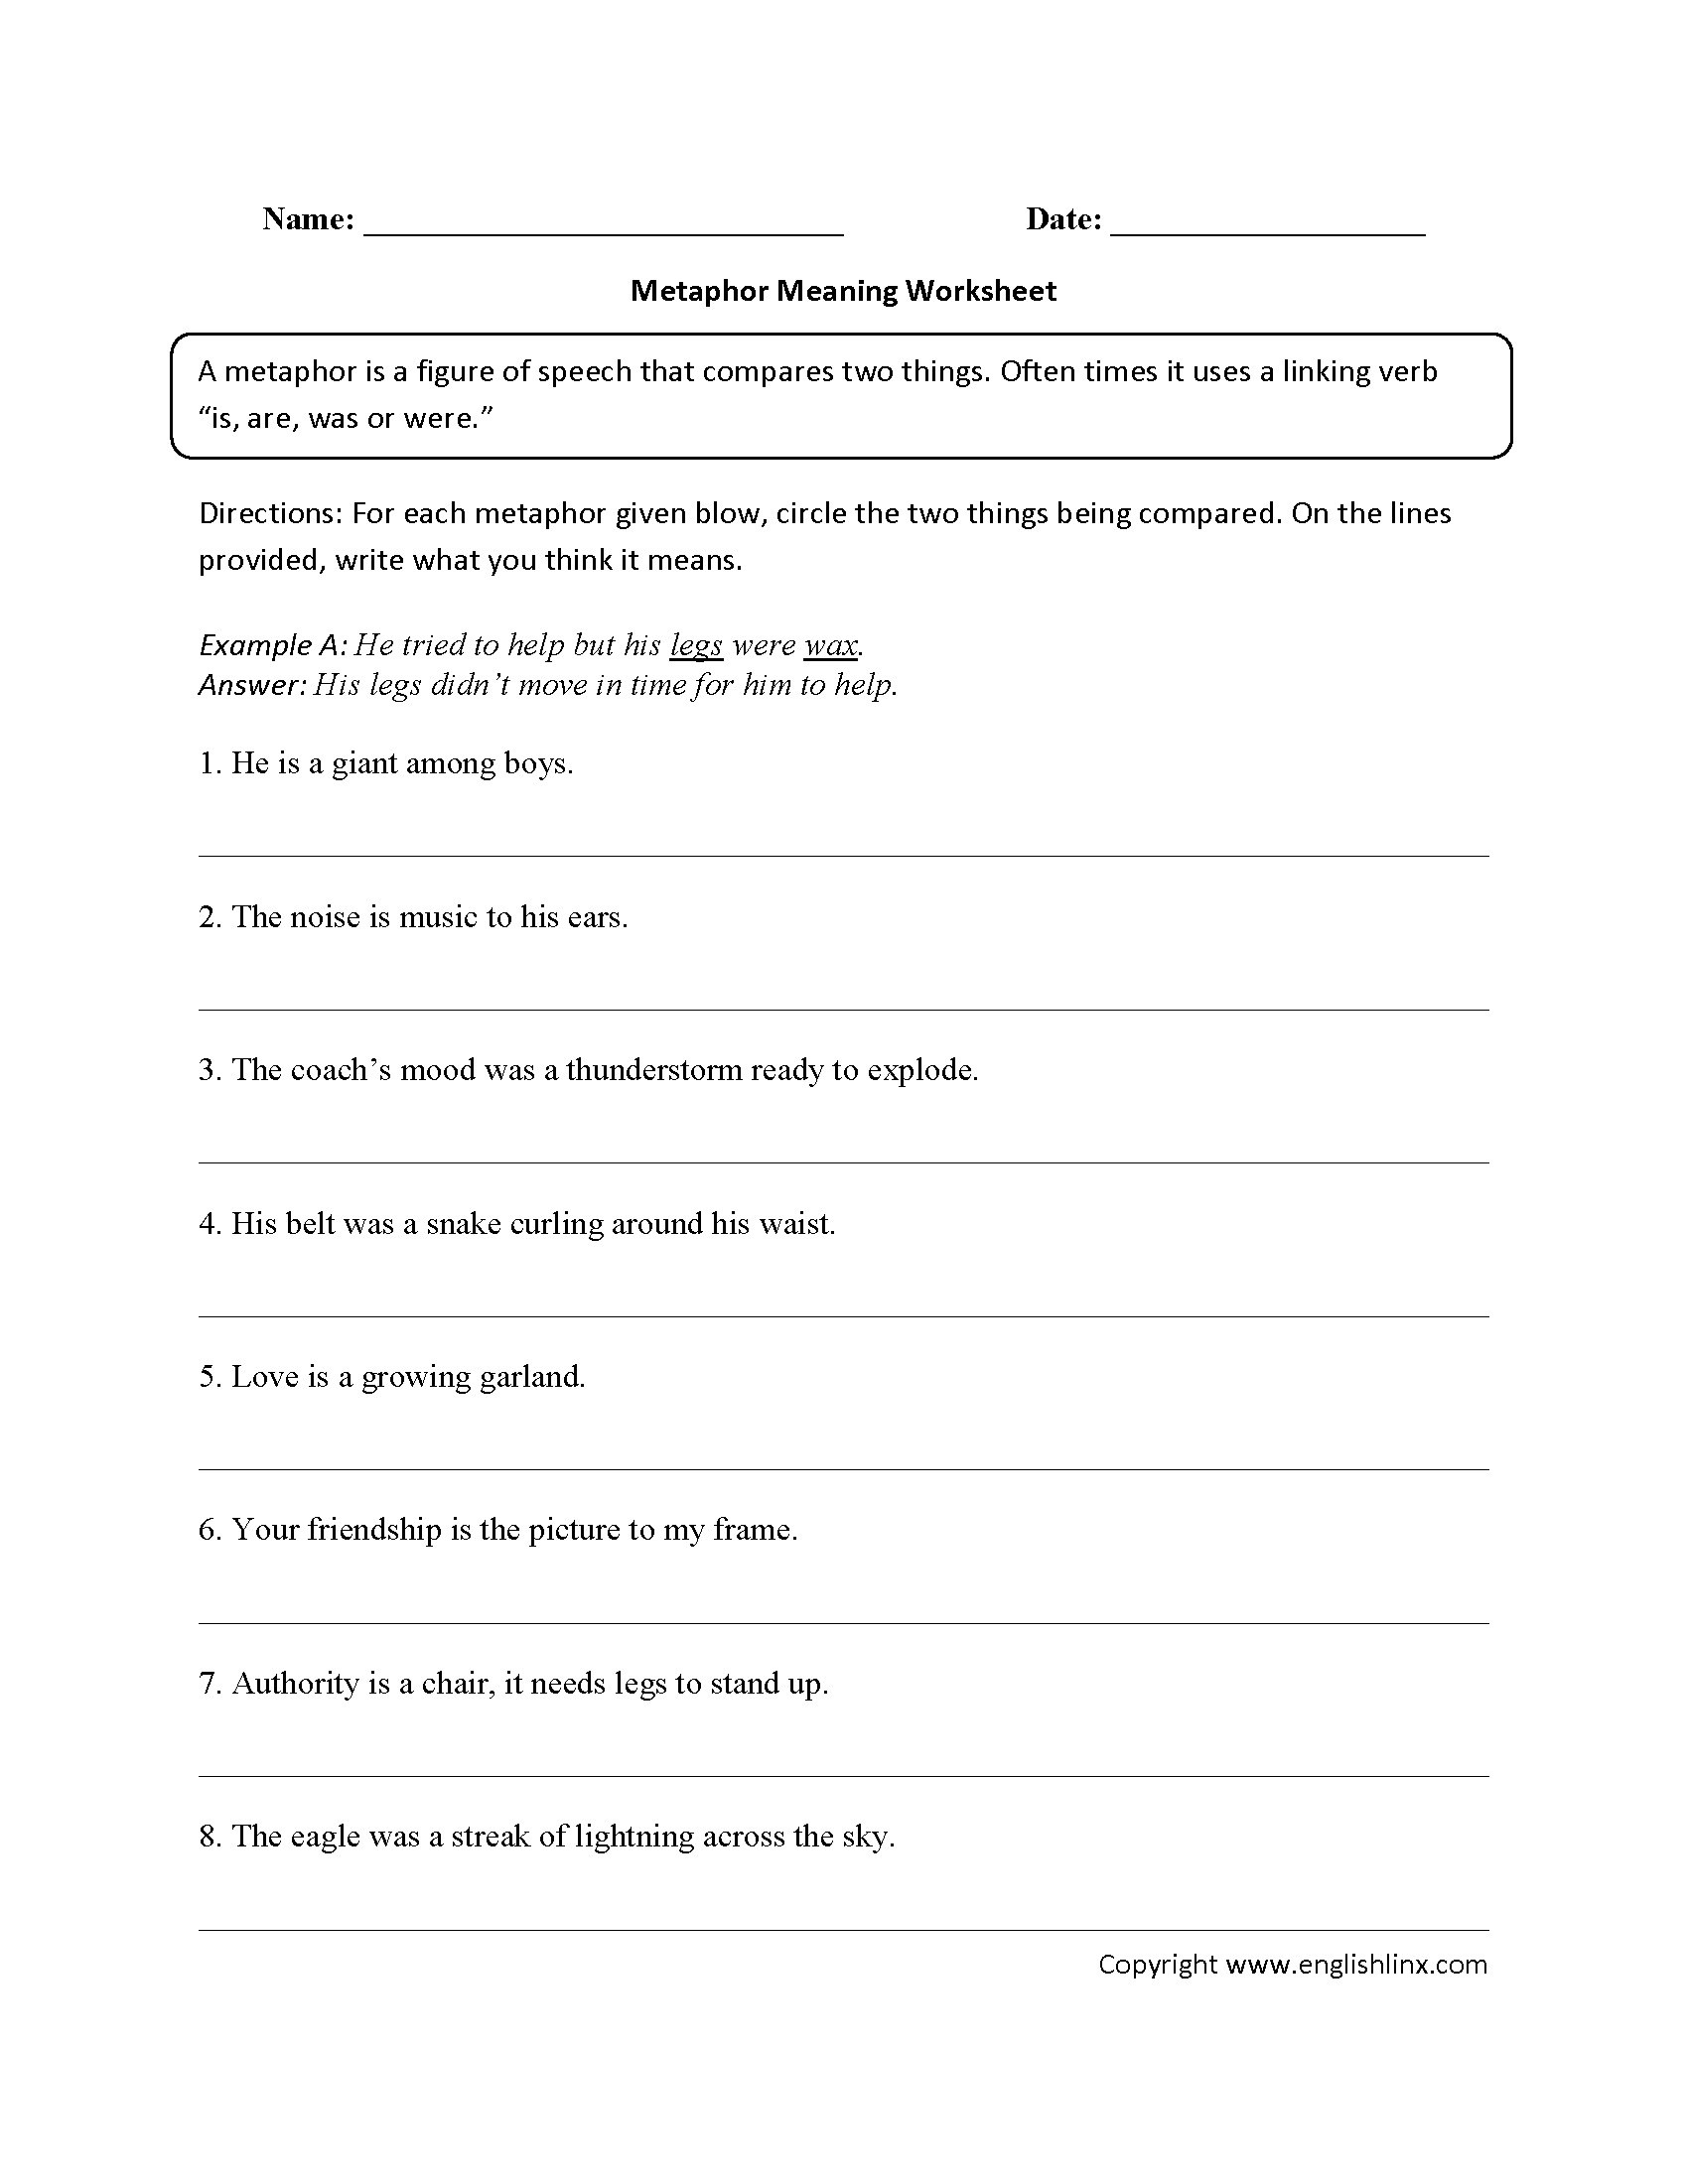 Metaphors Worksheets